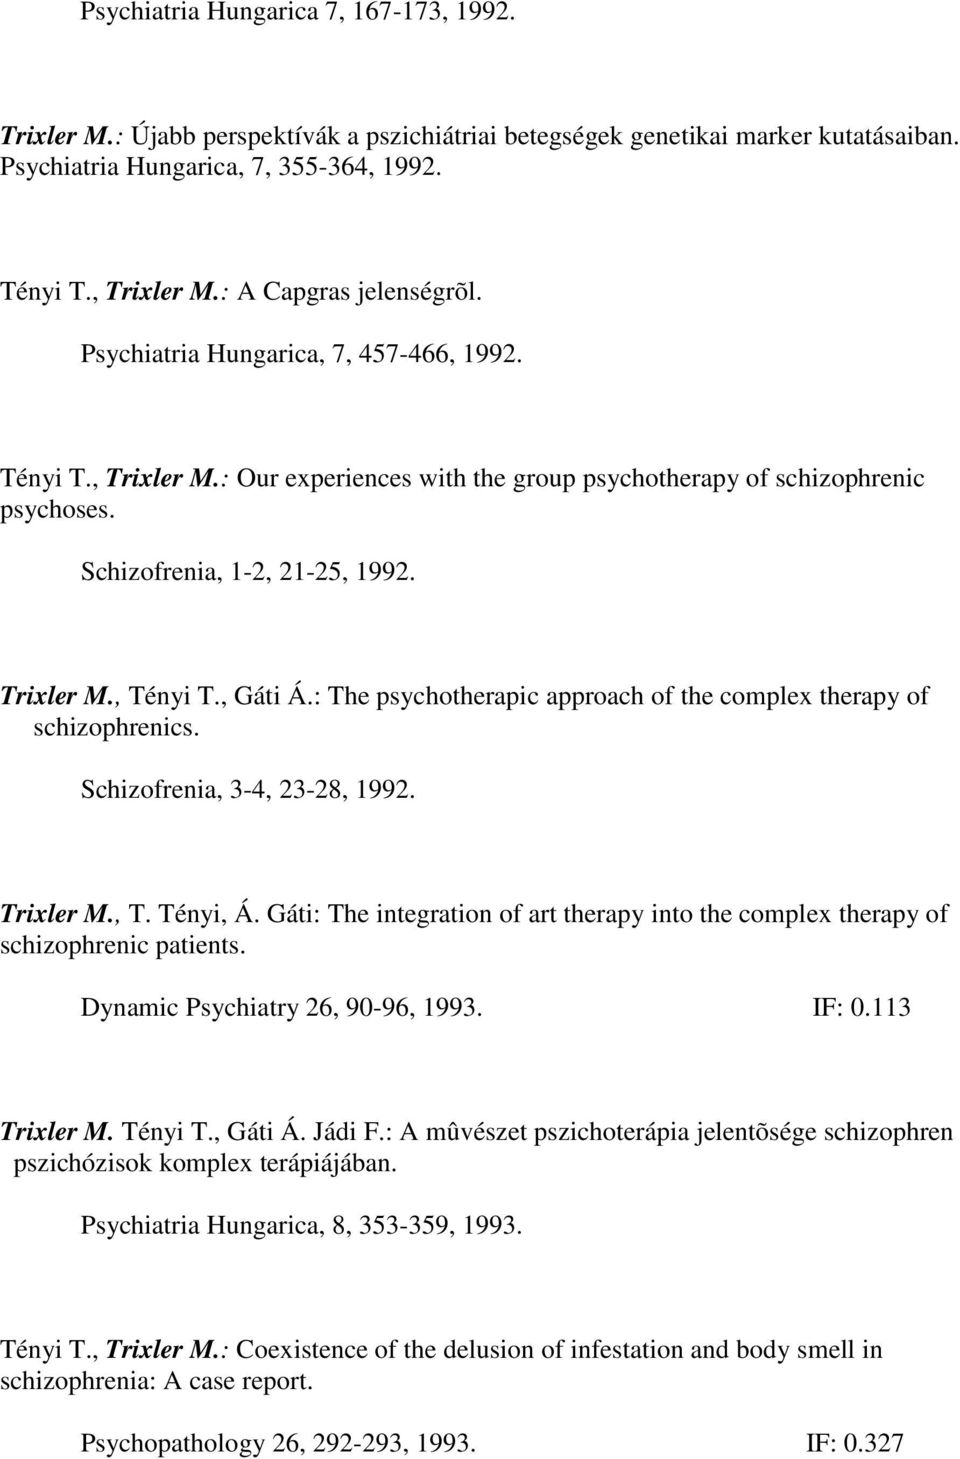 Trixler M., Tényi T., Gáti Á.: The psychotherapic approach of the complex therapy of schizophrenics. Schizofrenia, 3-4, 23-28, 1992. Trixler M., T. Tényi, Á.